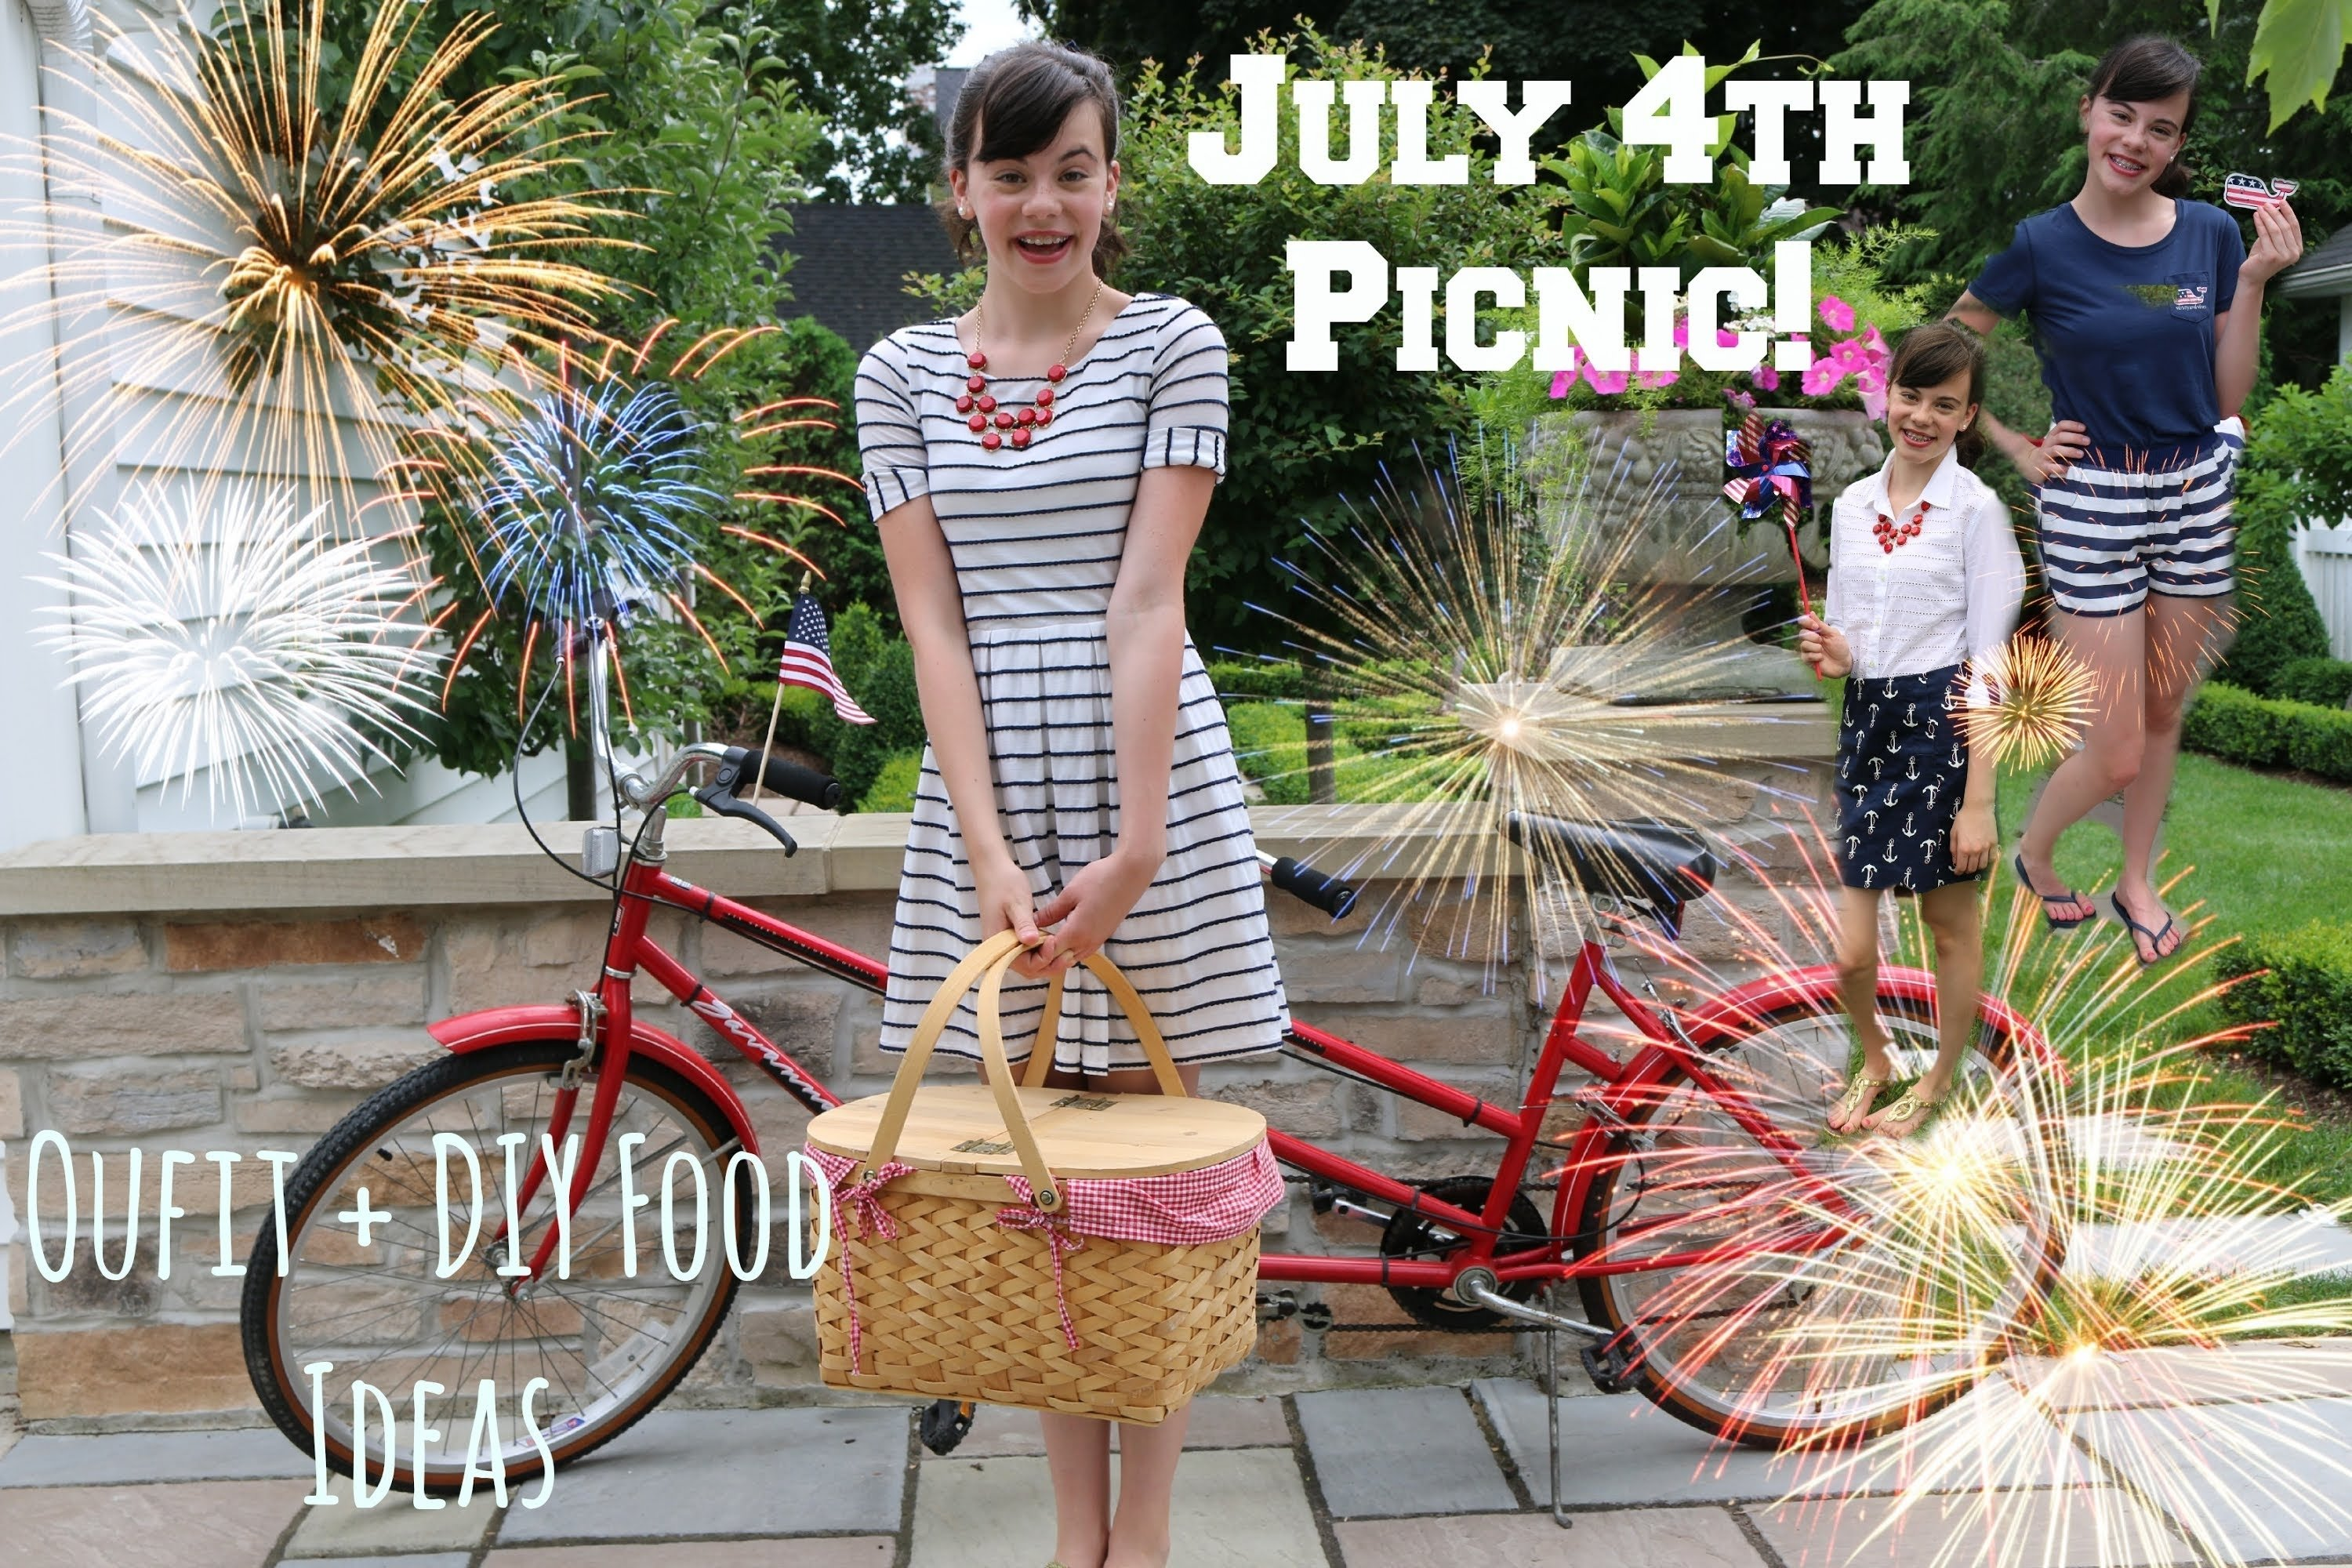 10 Perfect Fourth Of July Picnic Ideas 4th of july picnic outfits ideas diy food youtube 1 2021